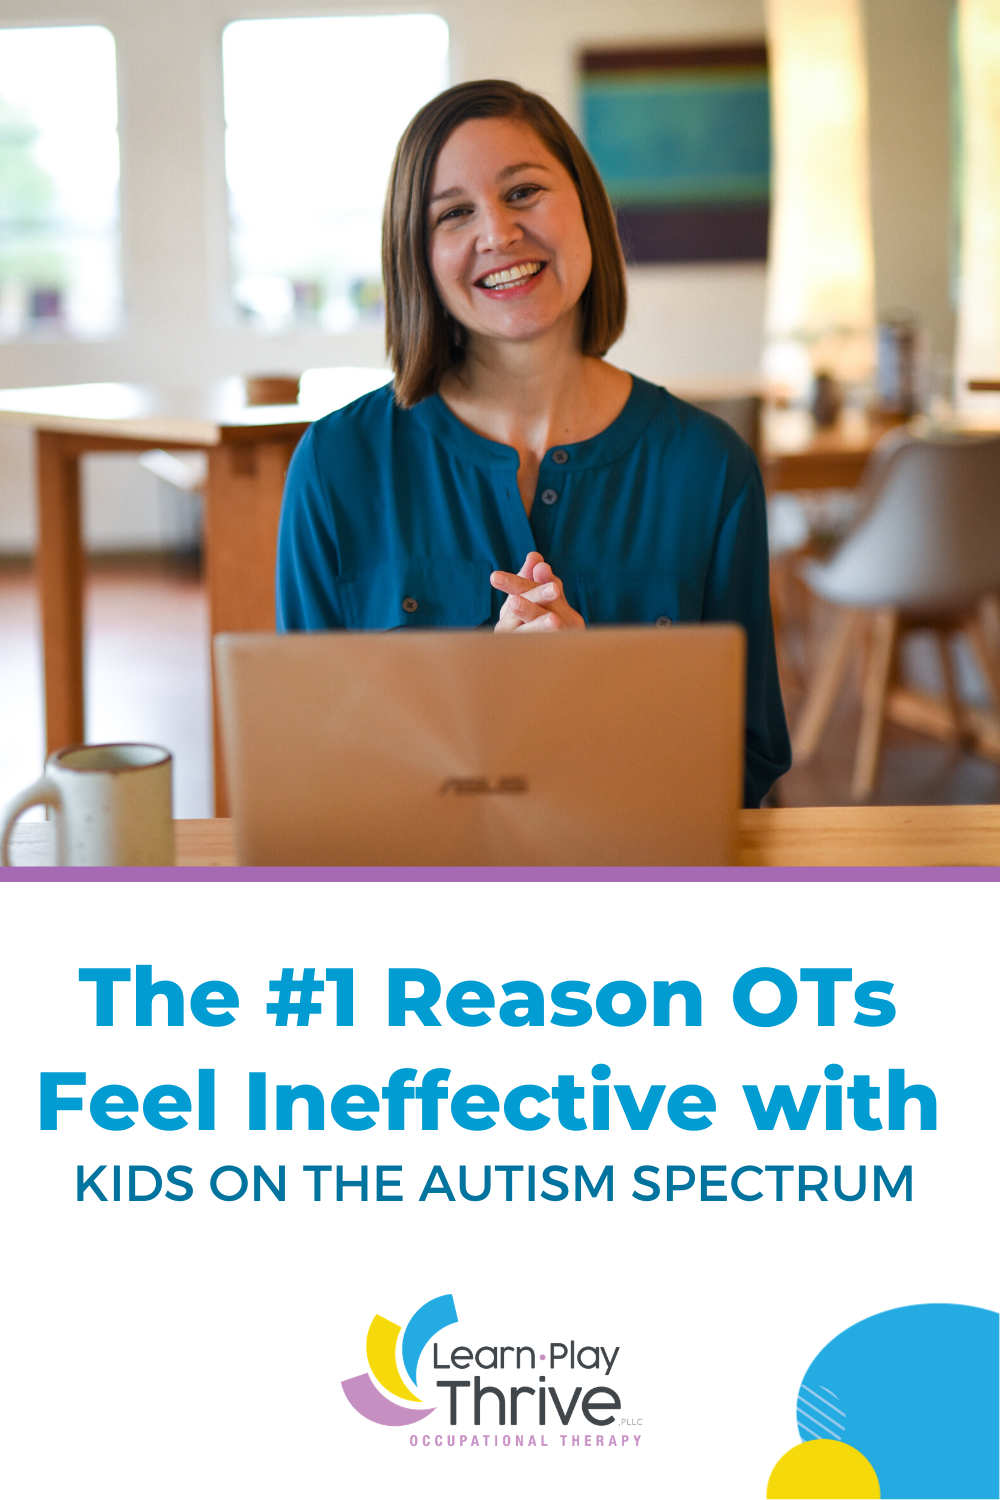 Why OTs feel ineffective with autism